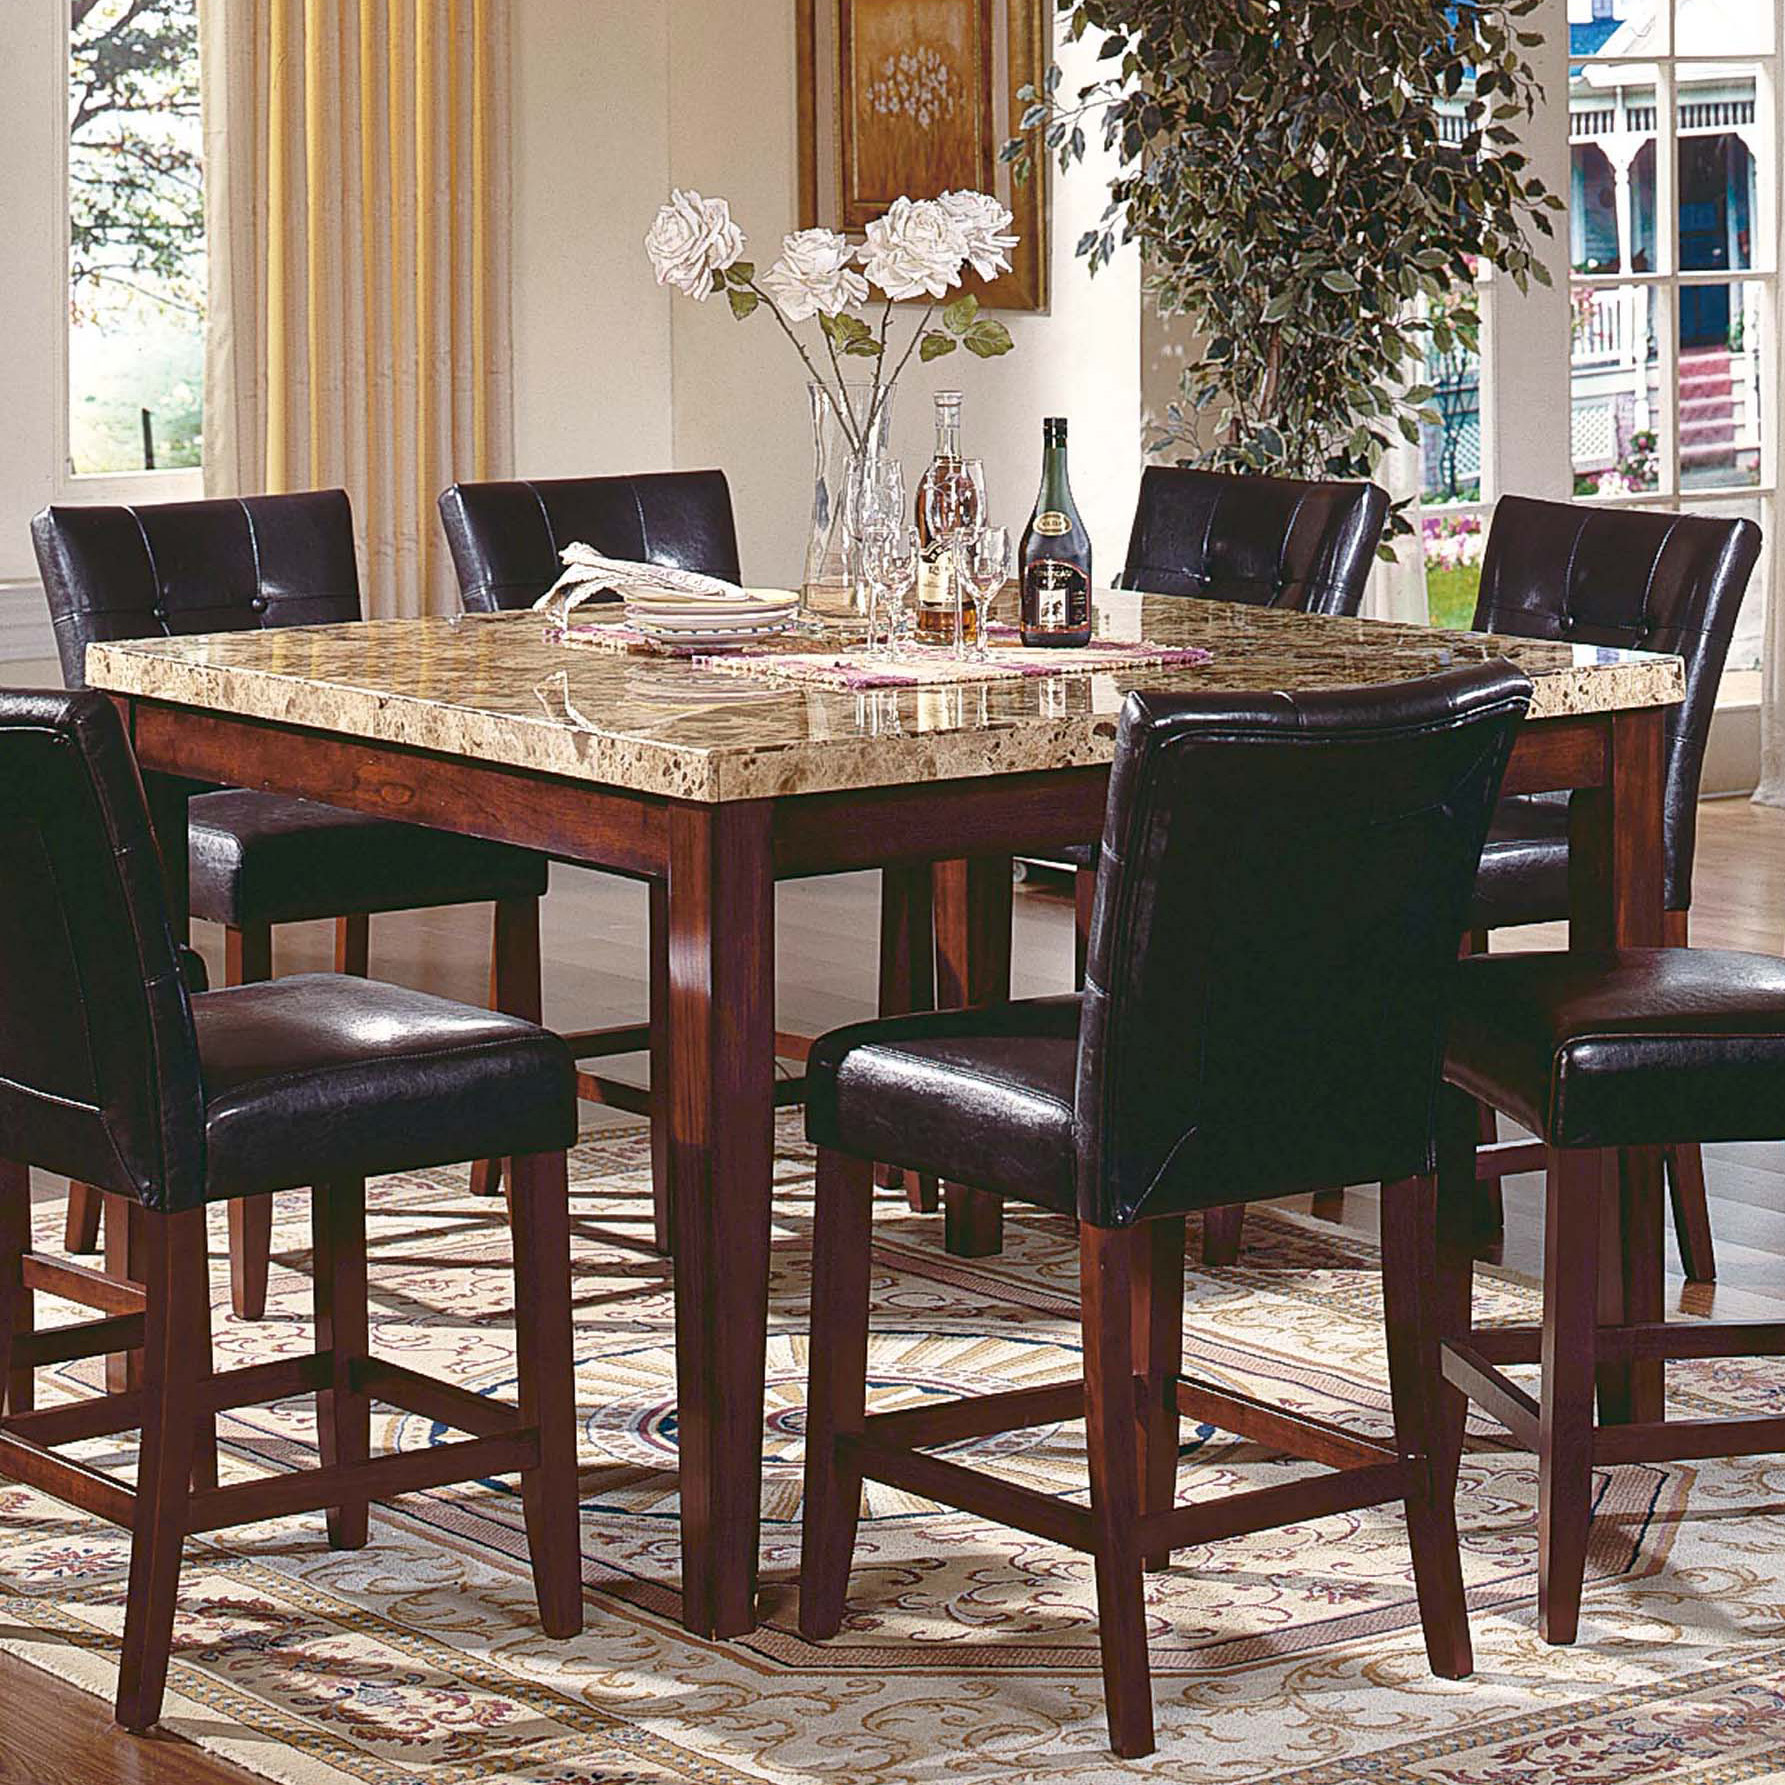 Standard Dining Room Chair Height - creditrestore.us